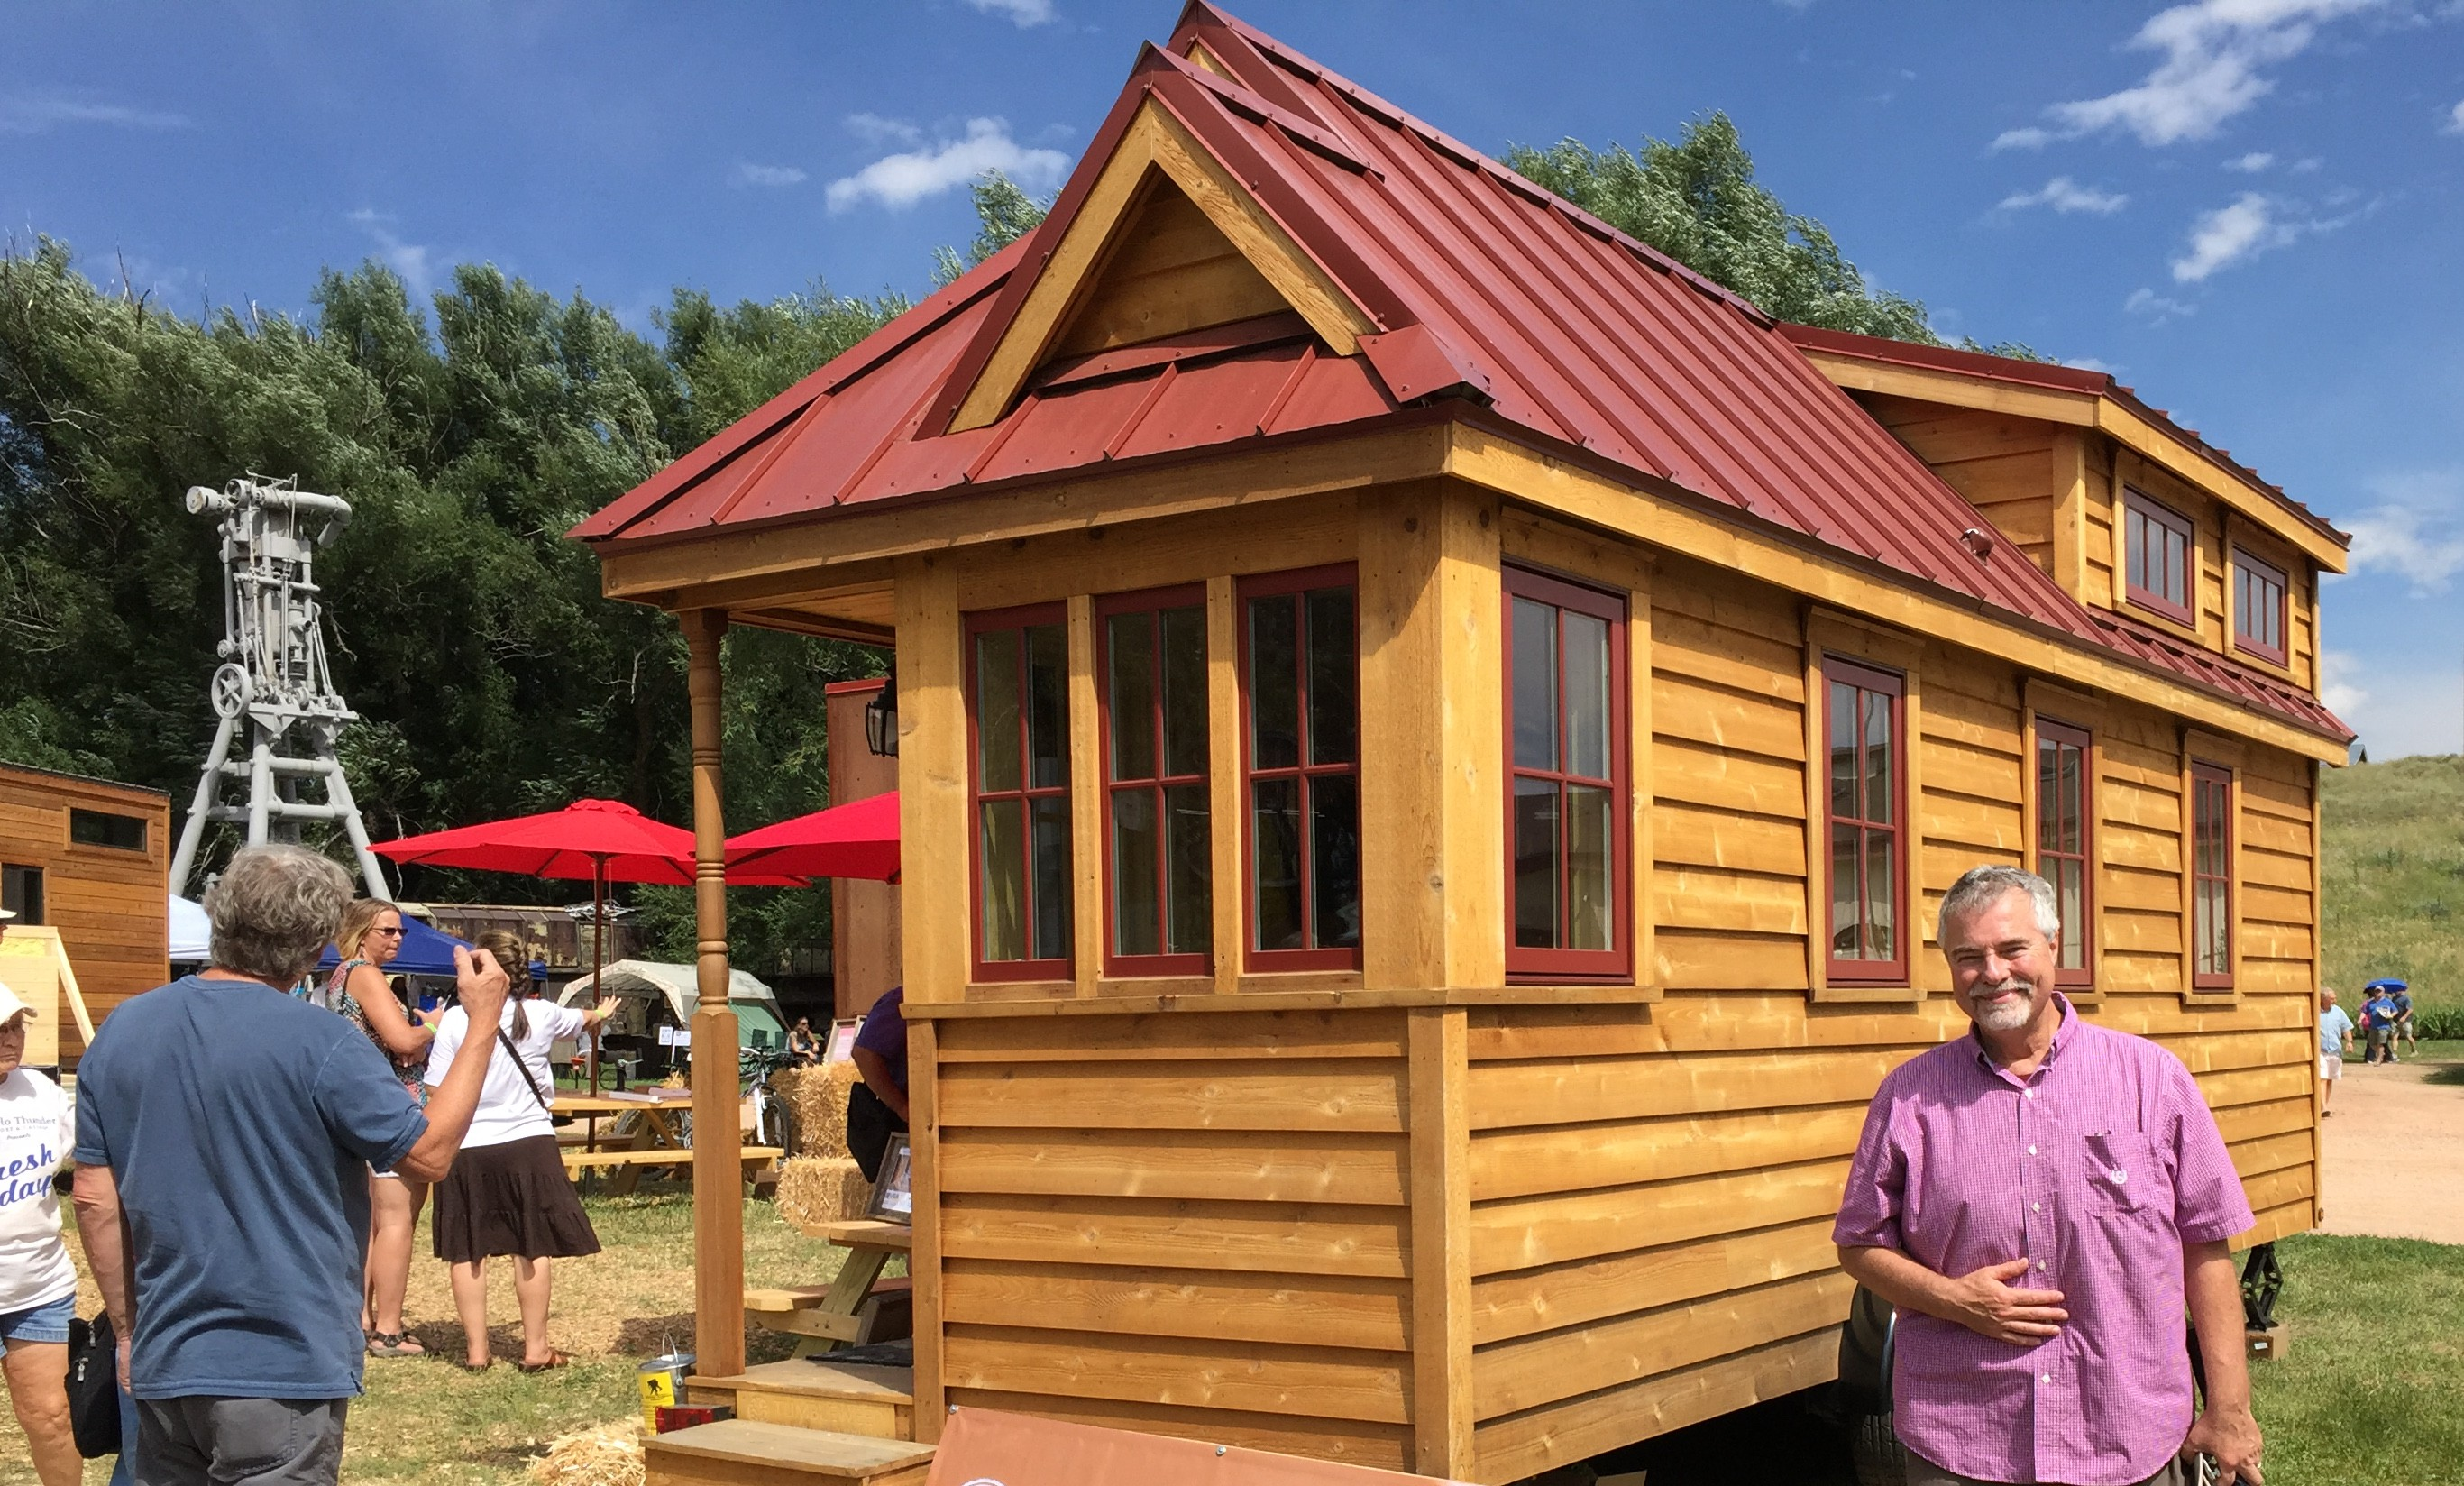 Why Our Fascination with Tiny Houses?